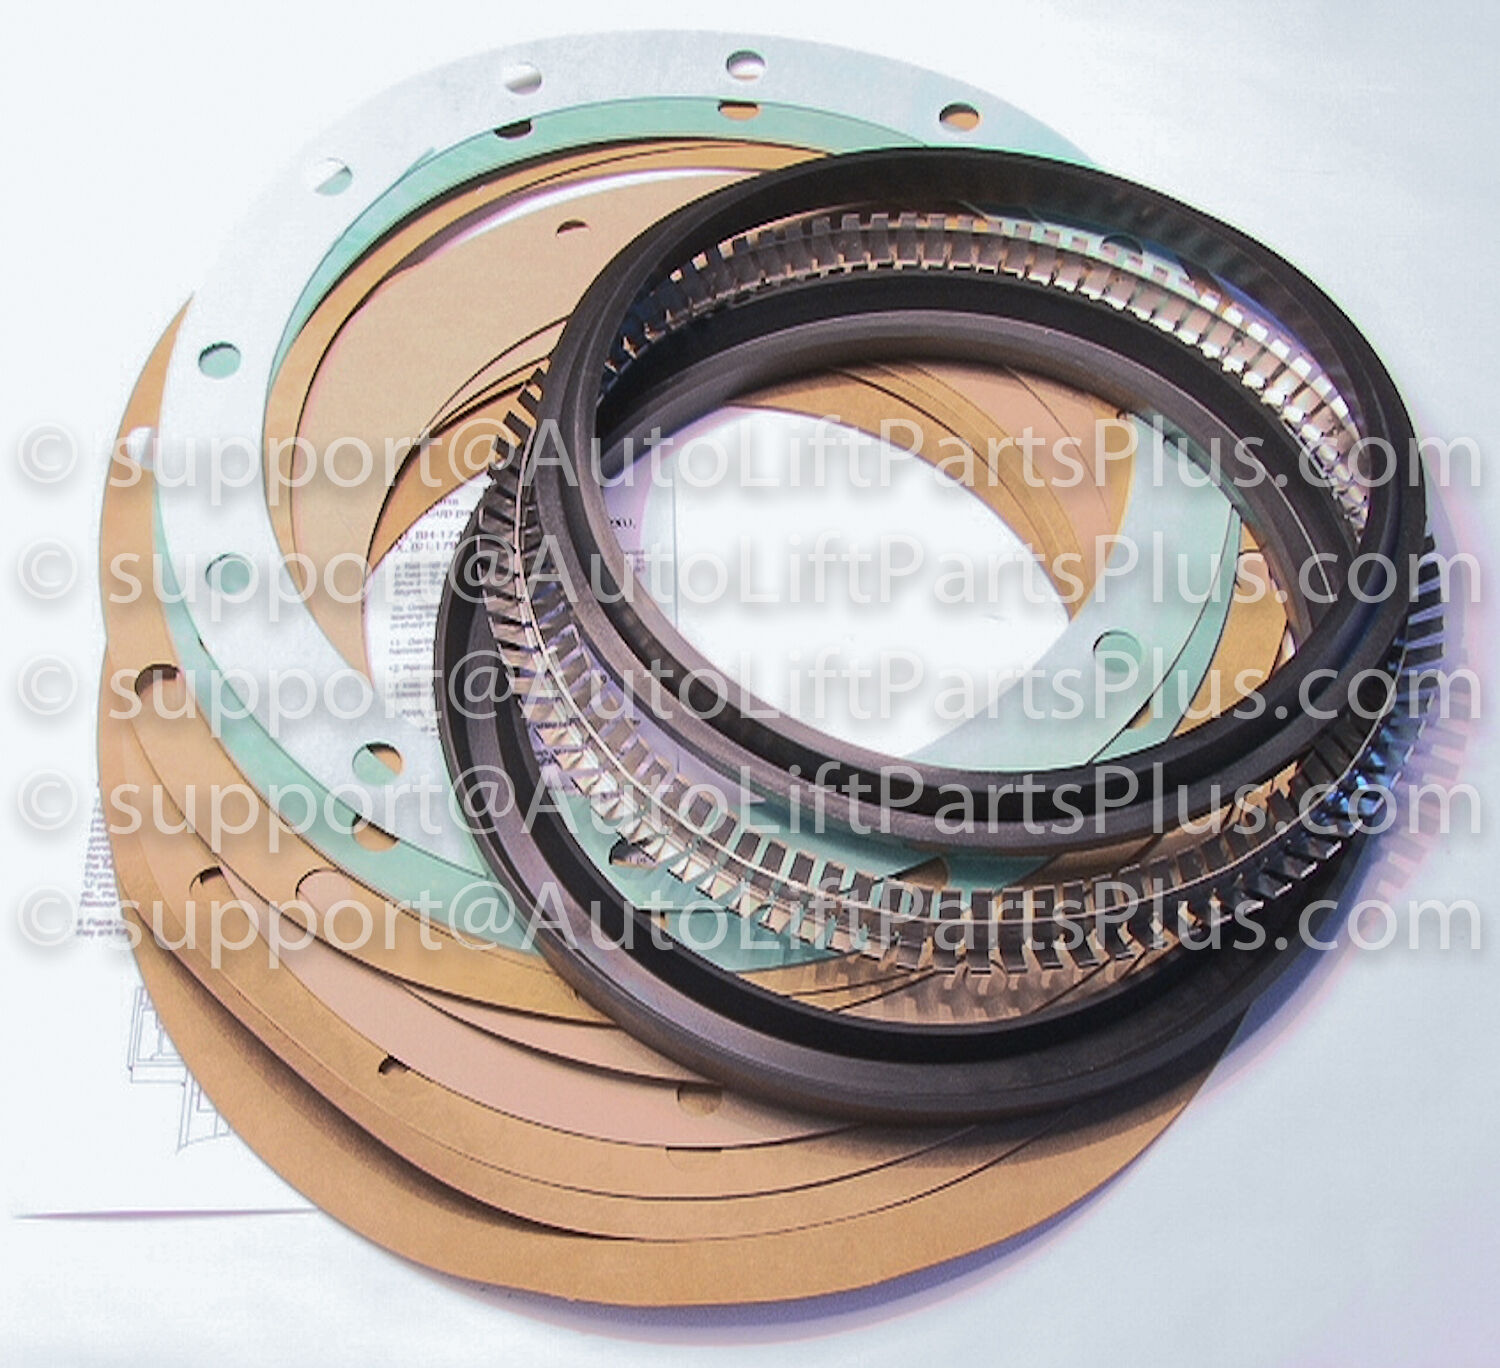 Globe In Ground Car Lift : Universal spring style seal kit for in ground globe lift